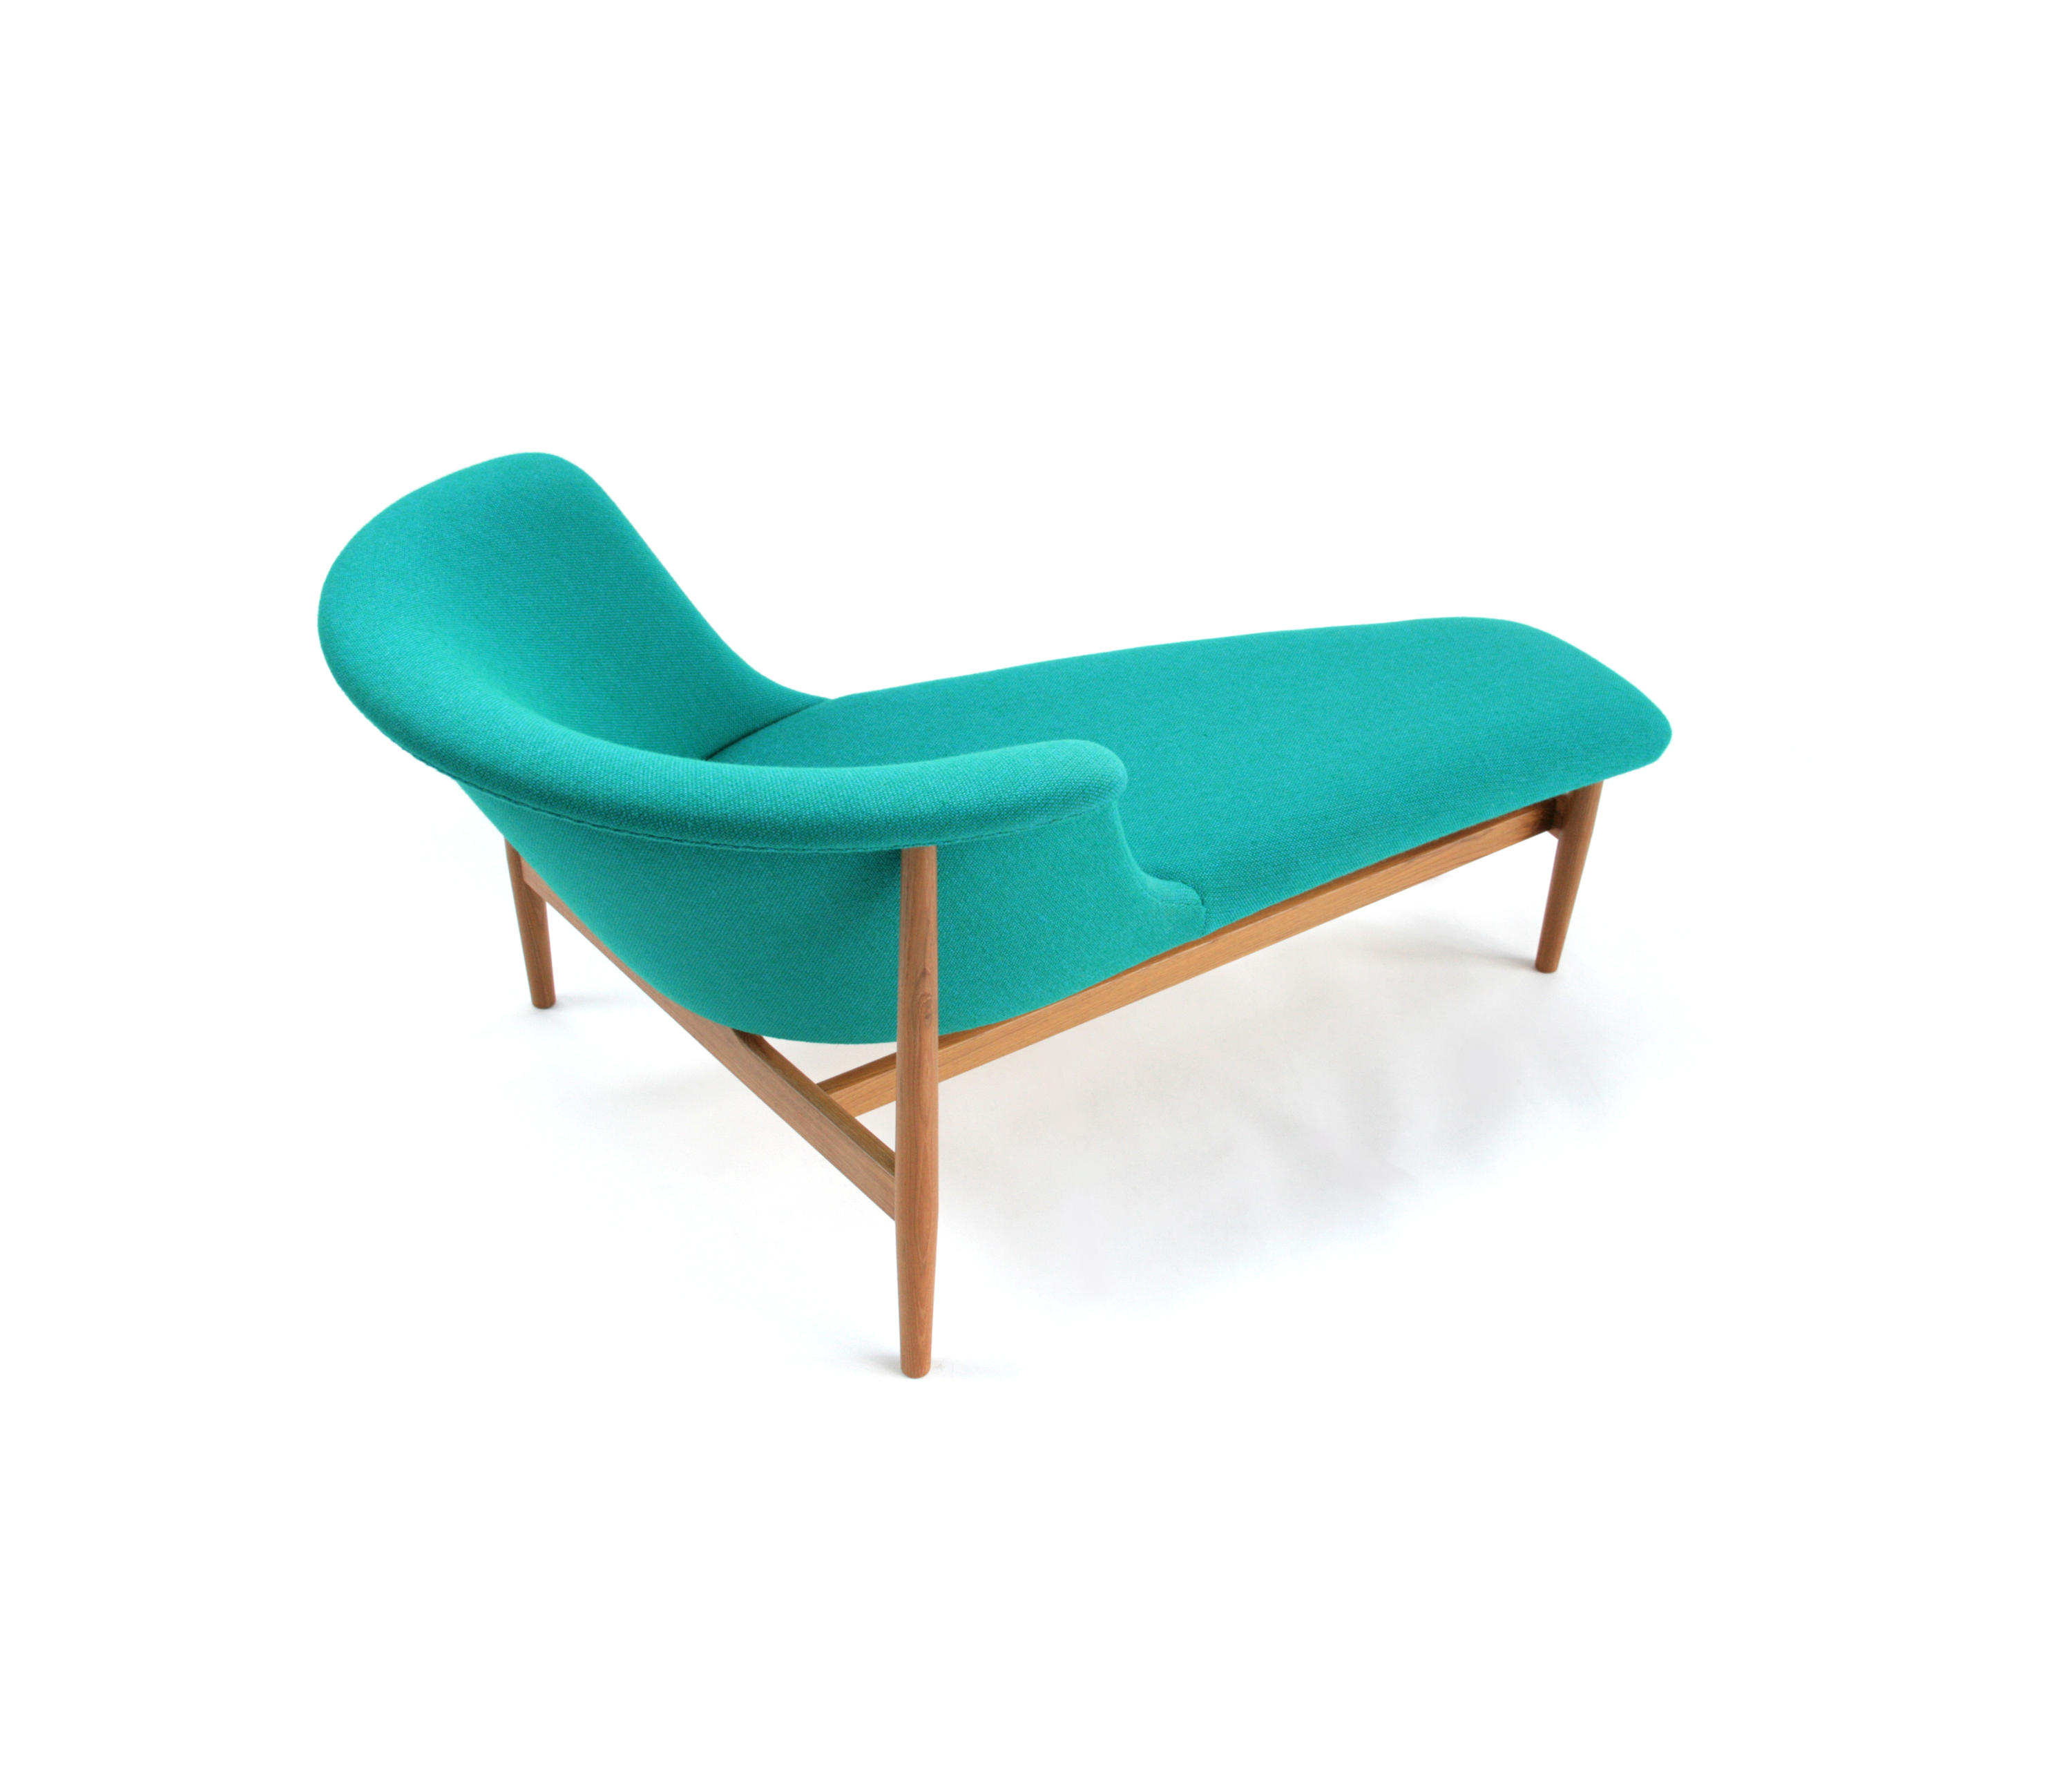 Nd 07 chaise longue chaise longues from kitani japan inc for Chaise longue manufacturers